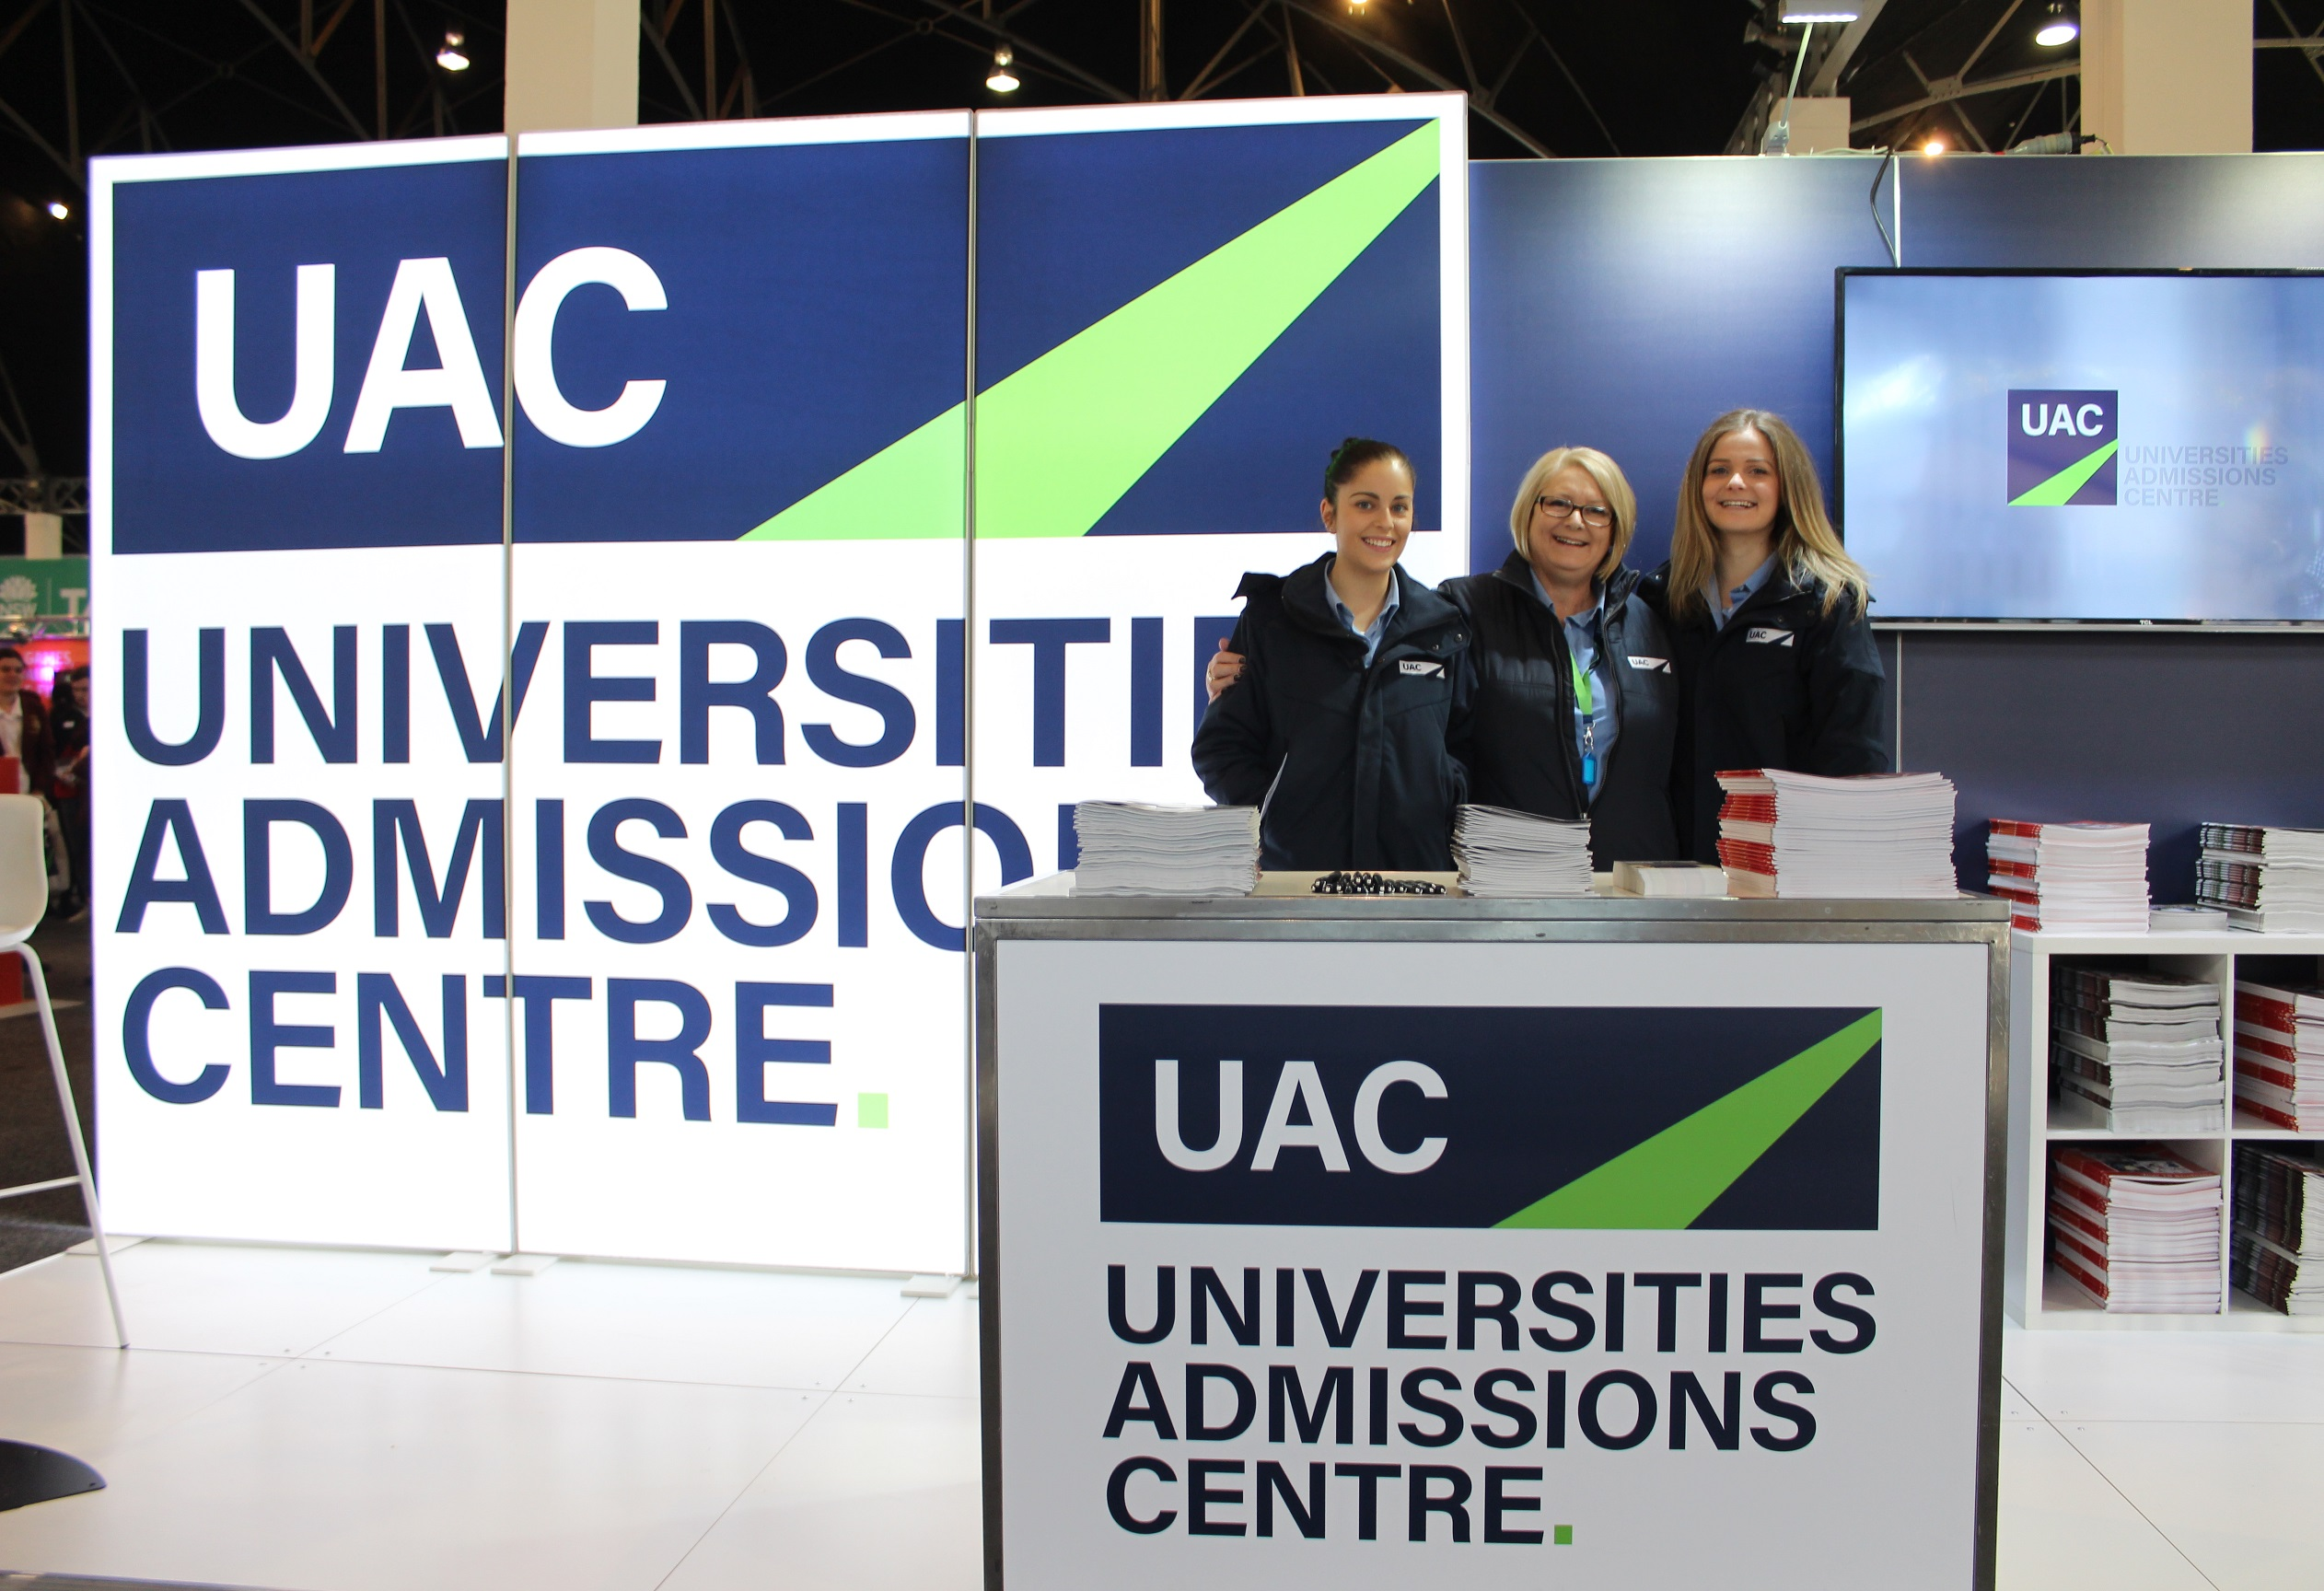 Three female UAC staff members stand smiling to camera at UAC expo stall; stacks of publications fill the stall shelves.